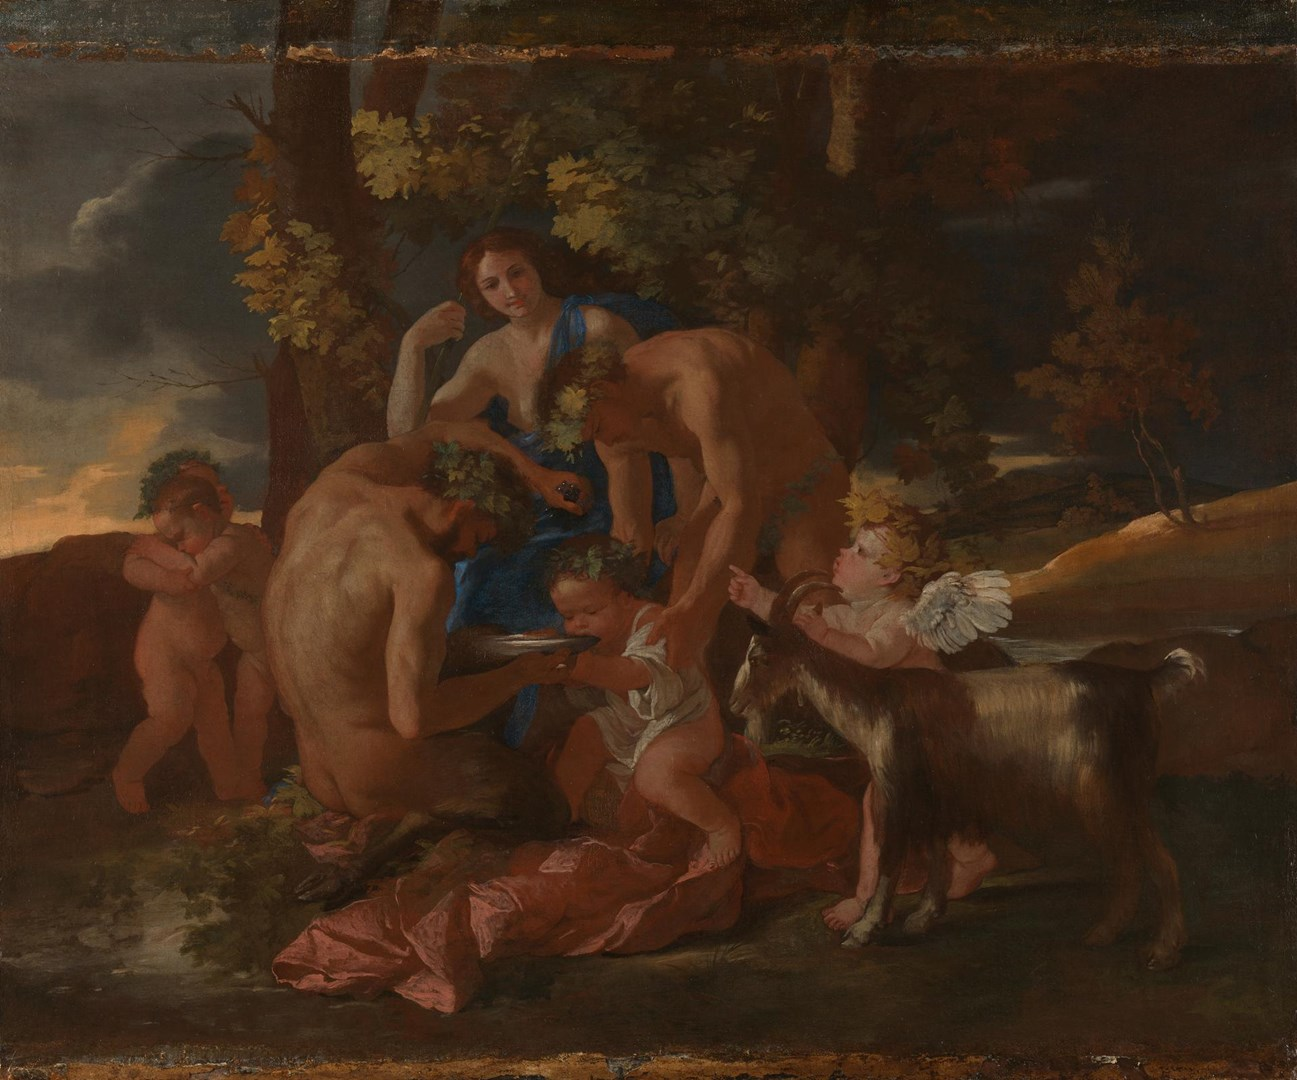 The Nurture of Bacchus by Nicolas Poussin